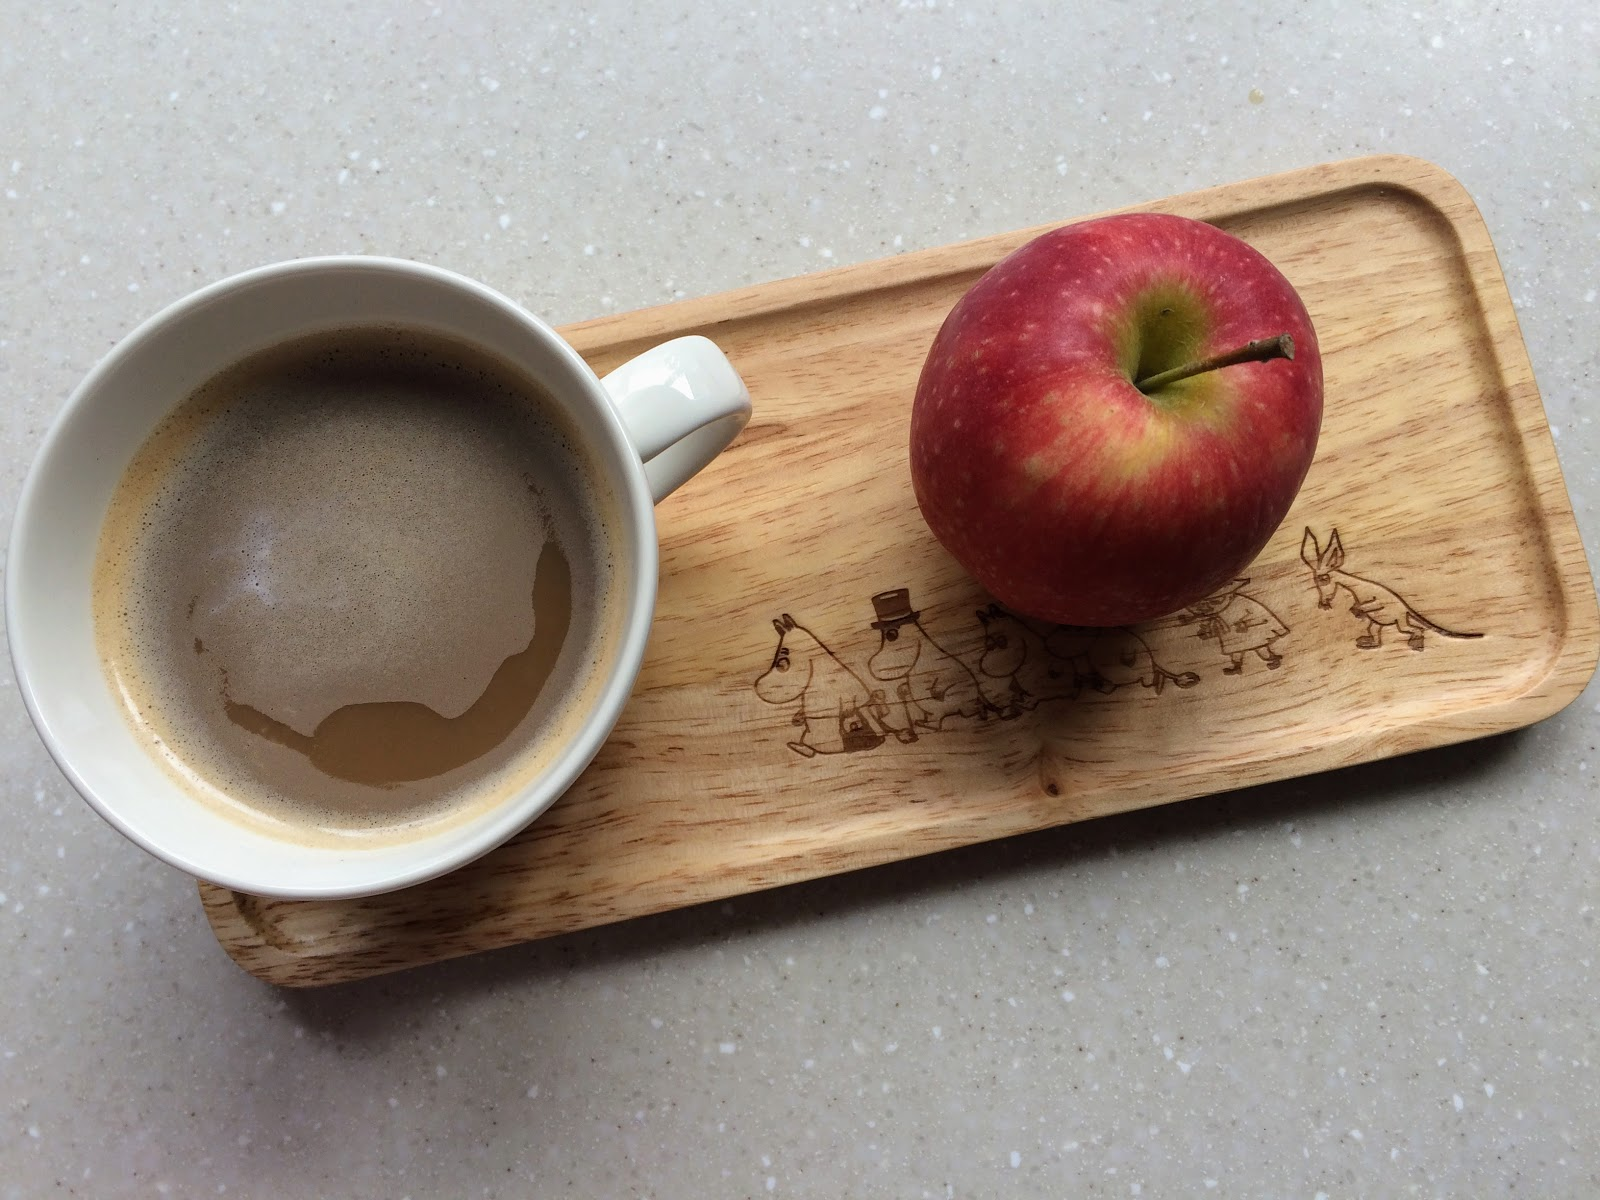 coffee and apple on moomin tray